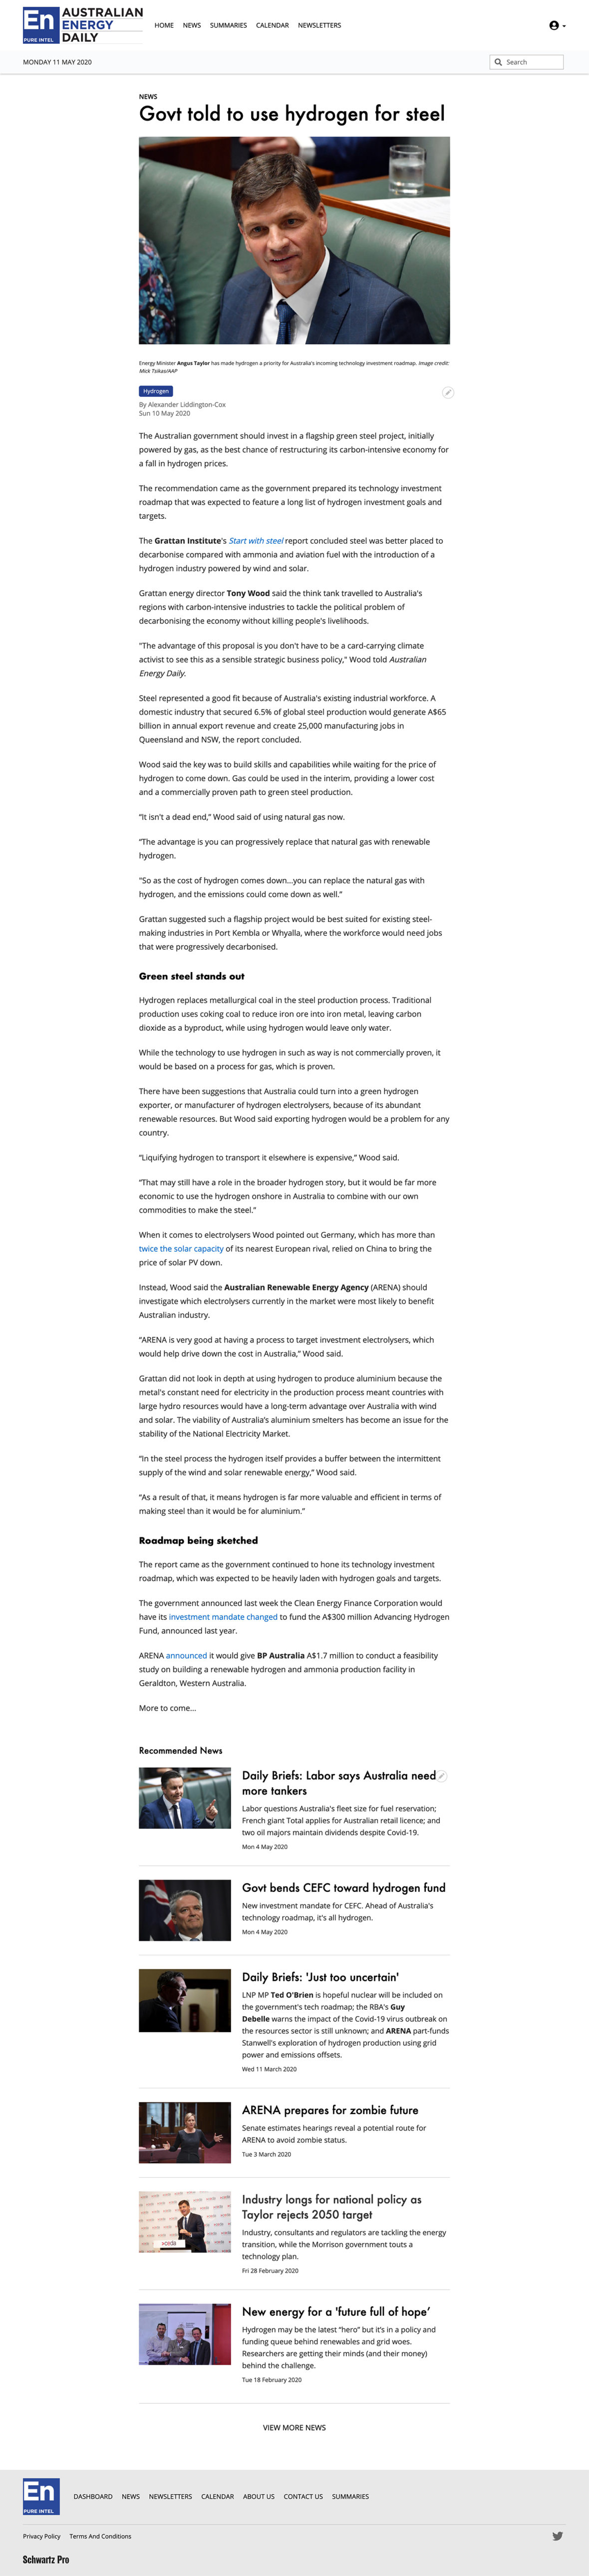 Australian Energy Daily UI Design article template